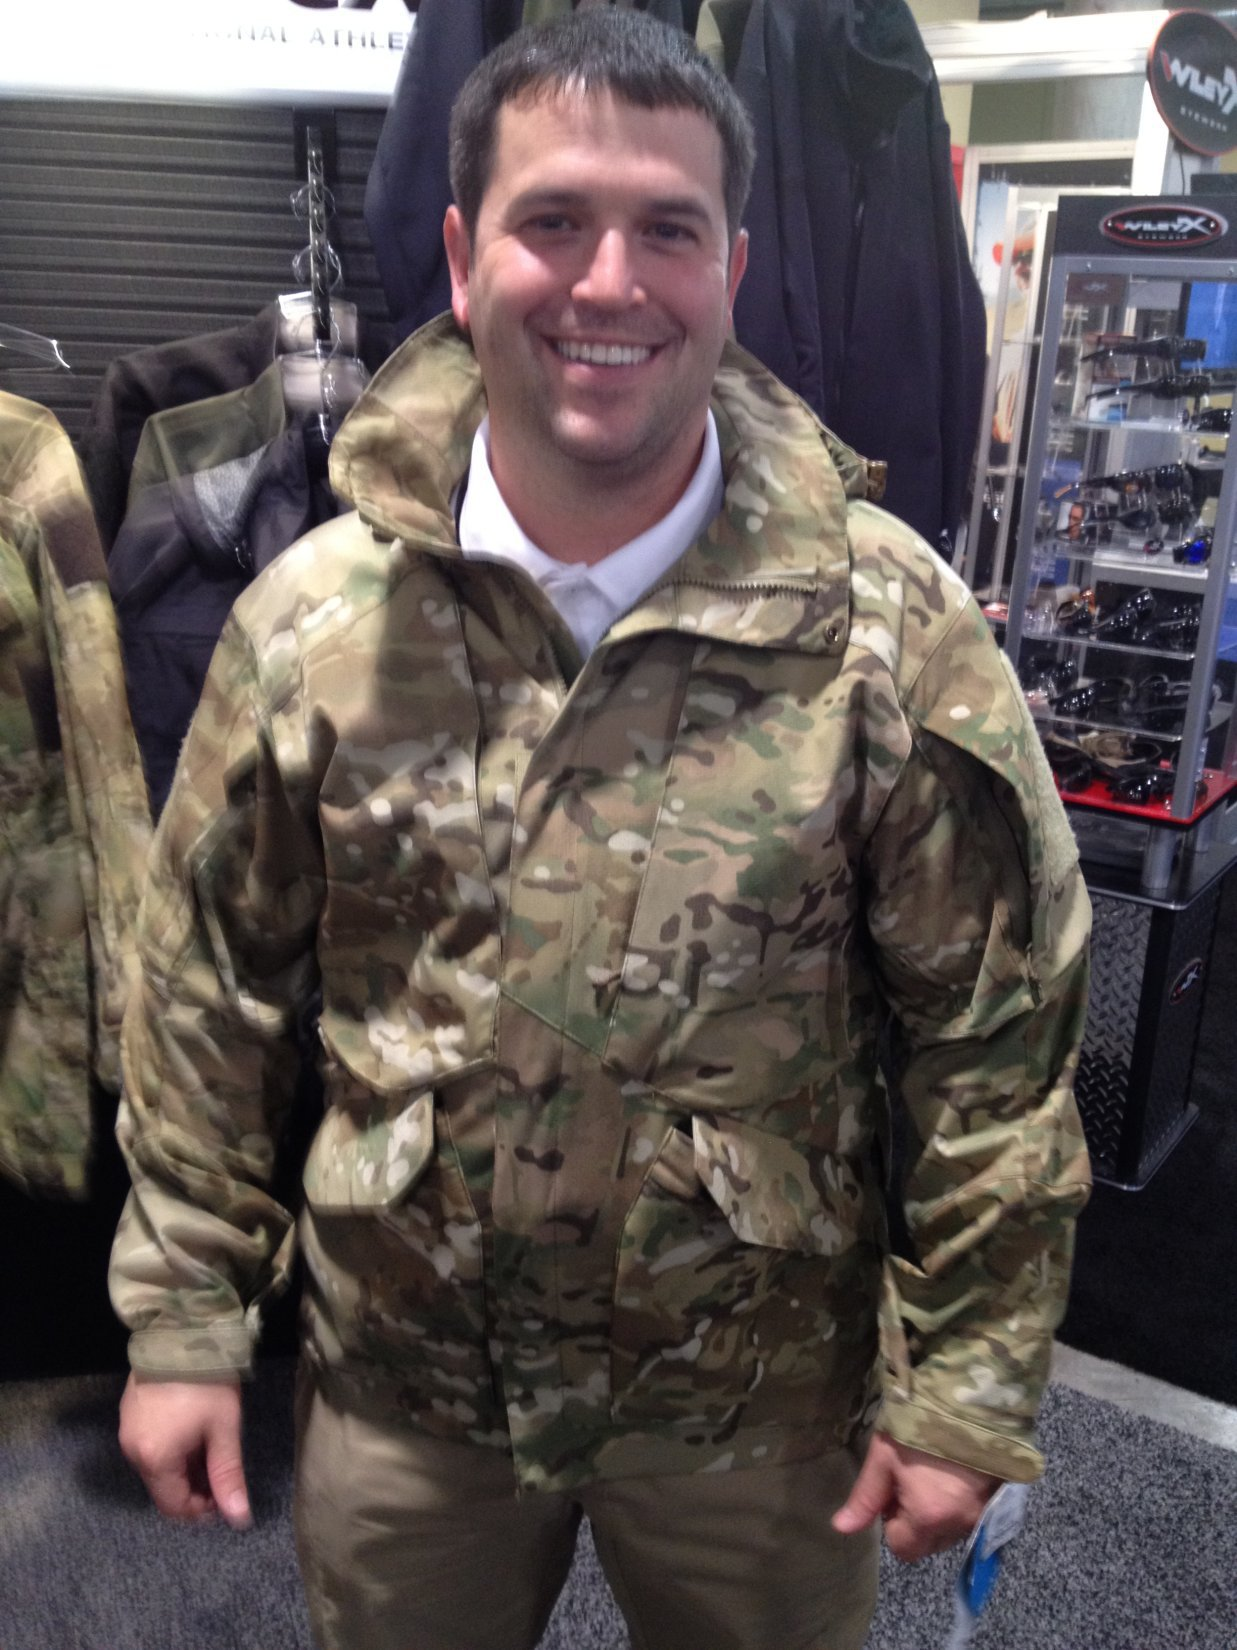 Vertx MultiCam Smock (Tactical Smock)/Hoodie Shell: Combat Smock/Tactical Jacket with Six (6) Internal/Integral 5.56mm Rifle Mag Pouches for Tactical Shooters! (Video!)